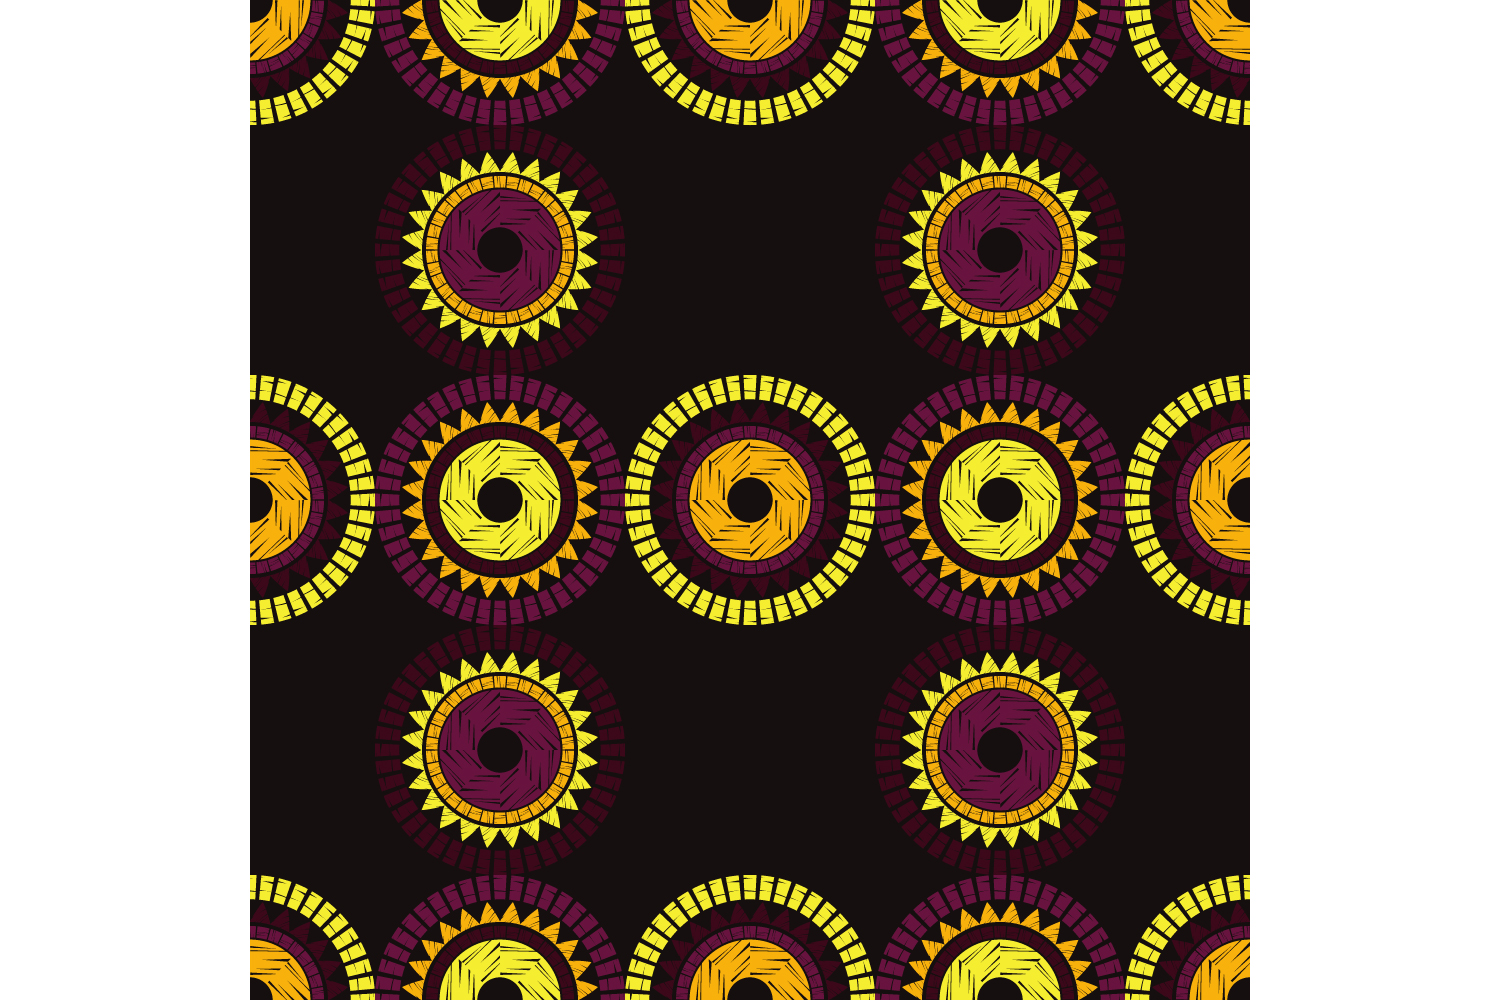 Polka dot ethnic ornament. Set of 10 seamless patterns. example image 3